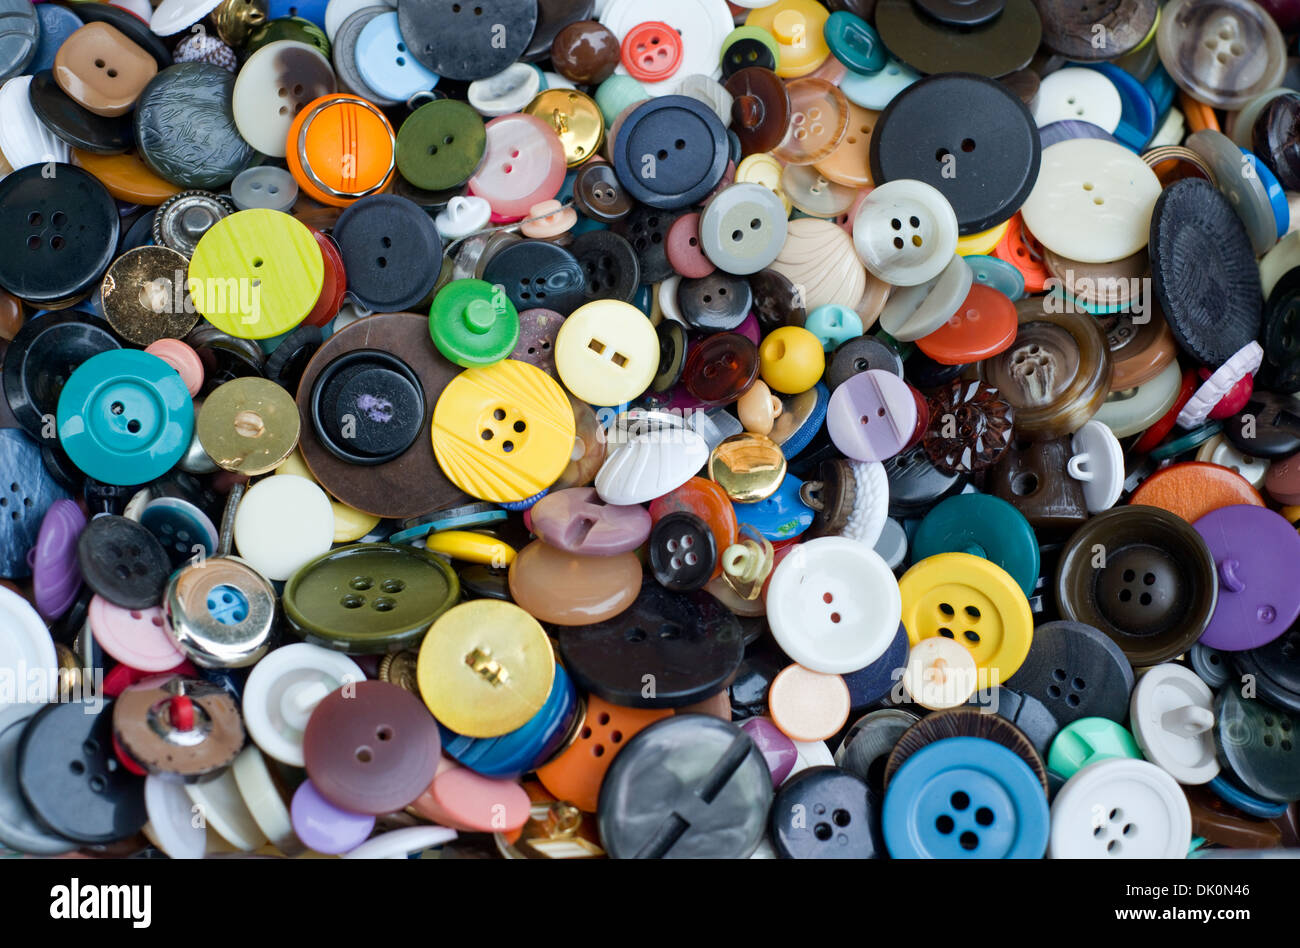 Close-up of a large collection of multi-coloured buttons - Stock Image